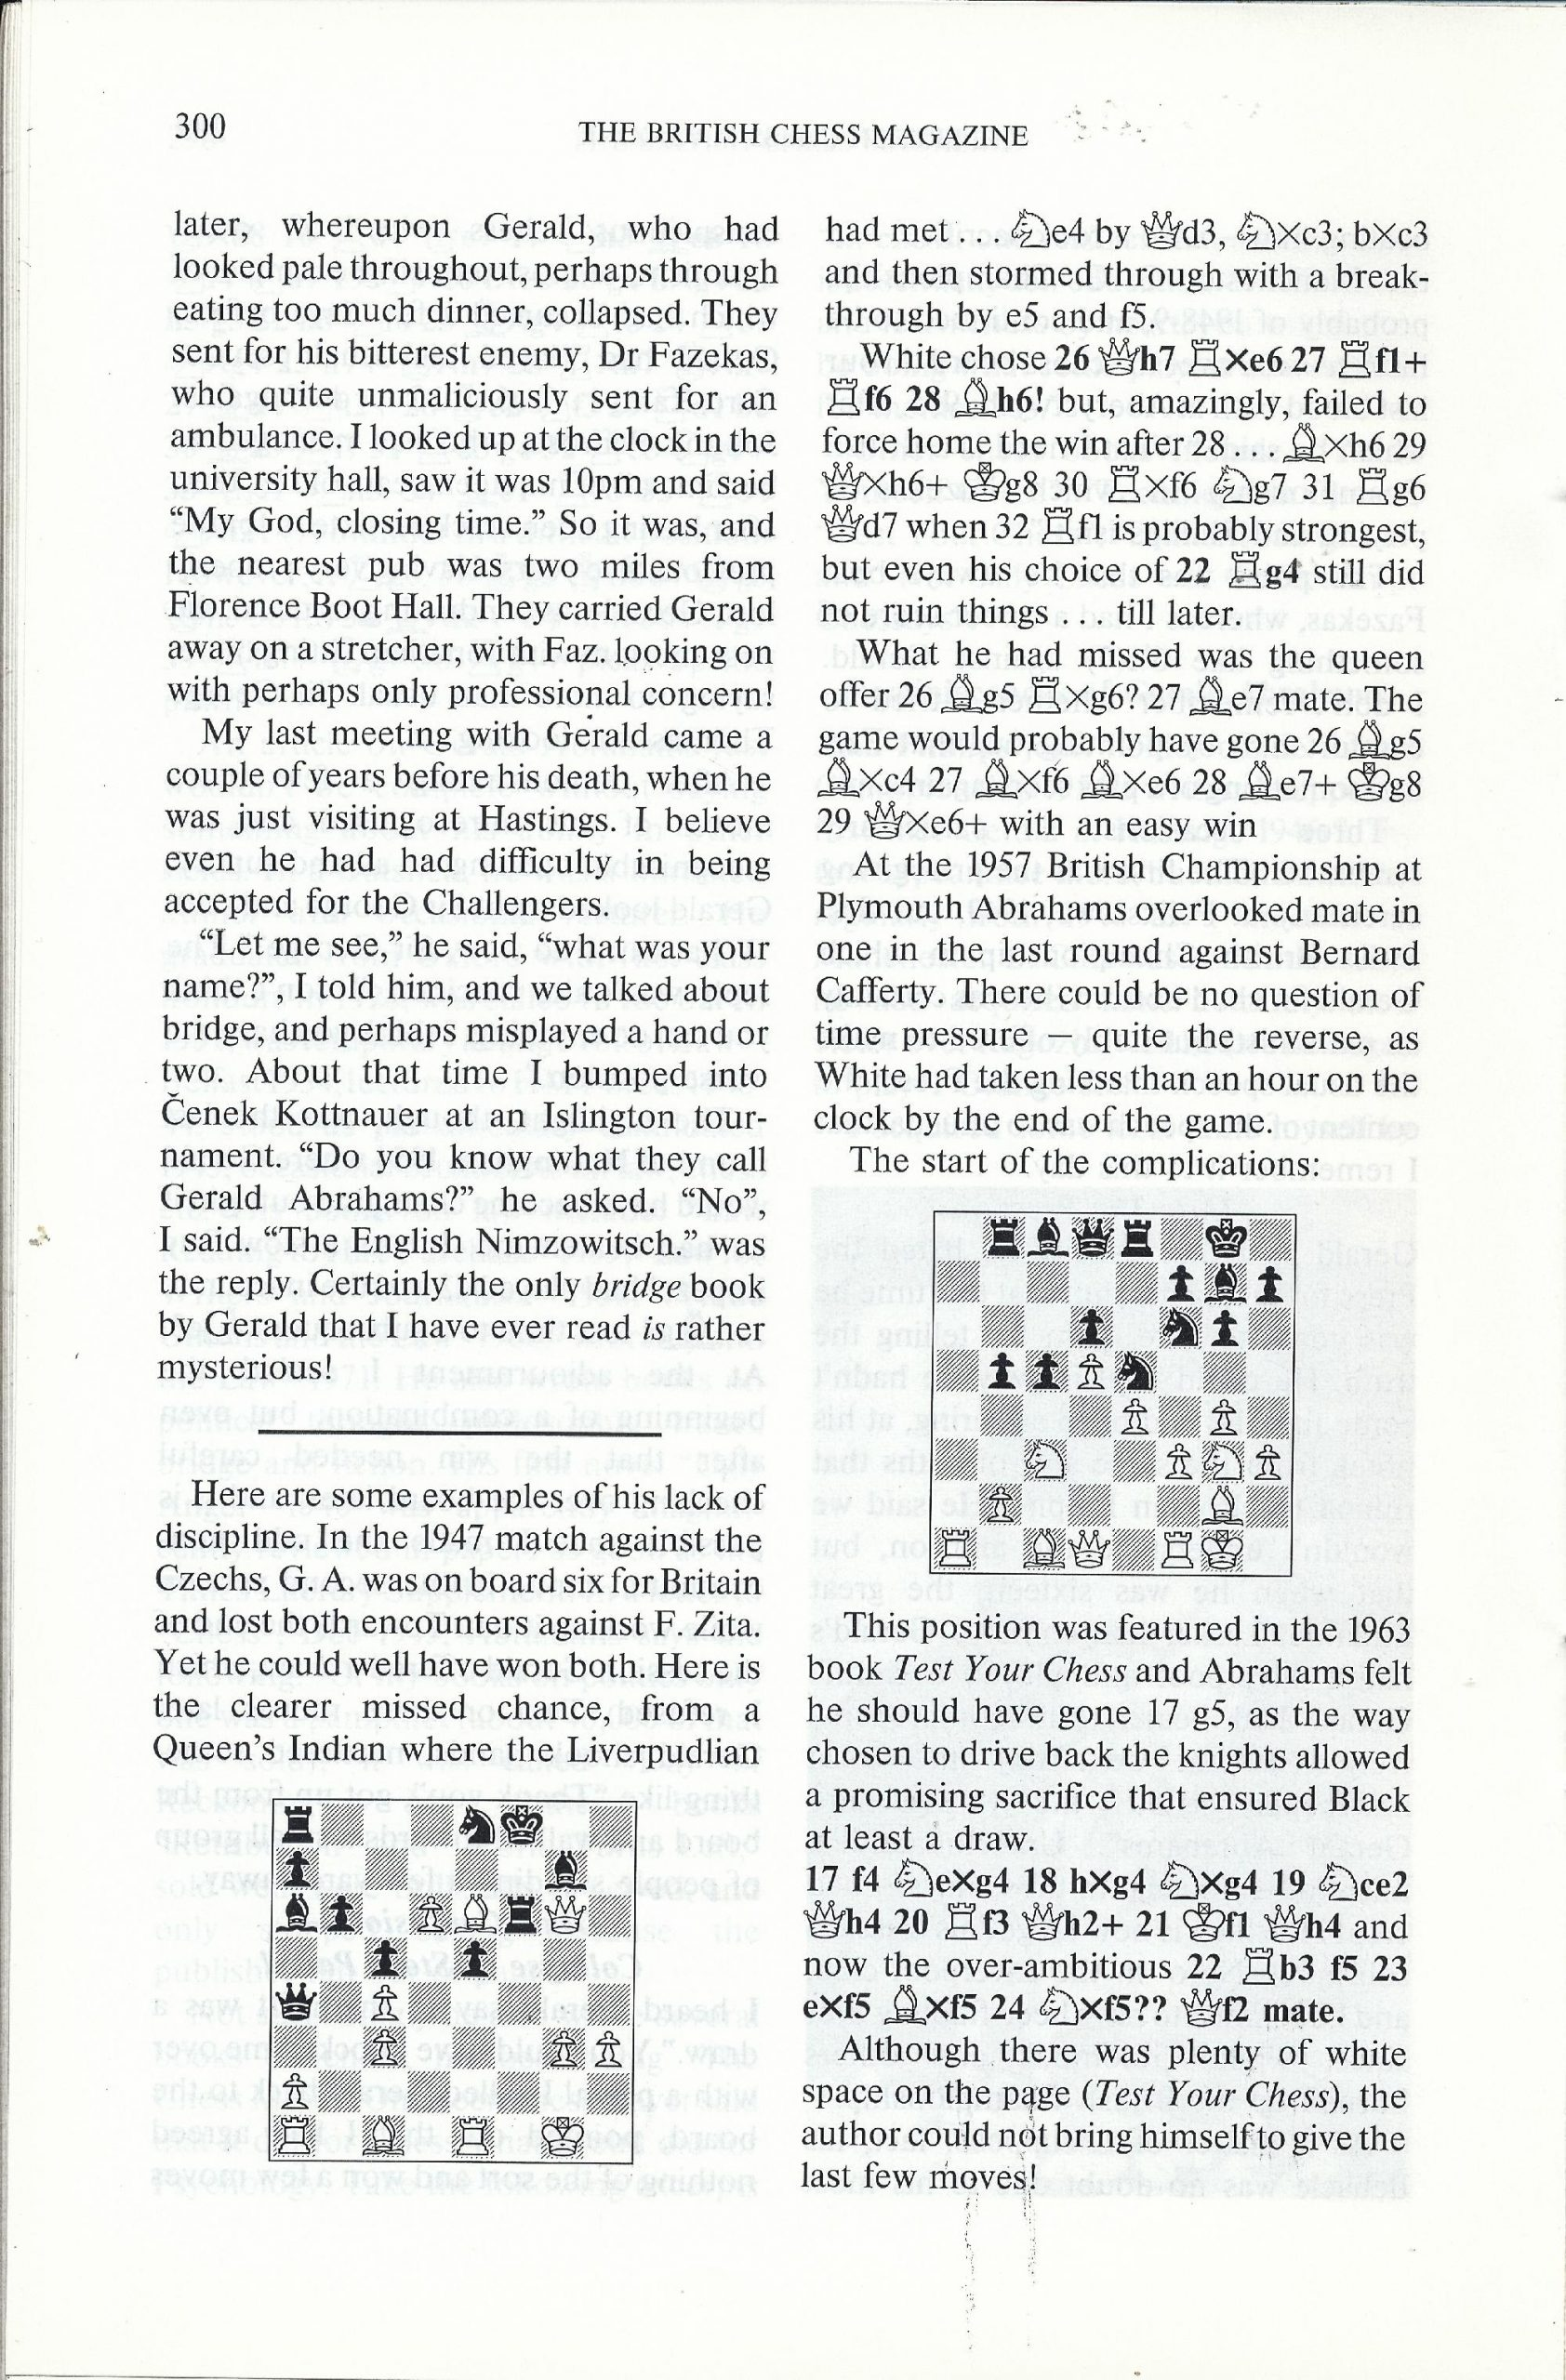 British Chess Magazine, Volume CVIII (1988), Number 7 (July), pp. 300